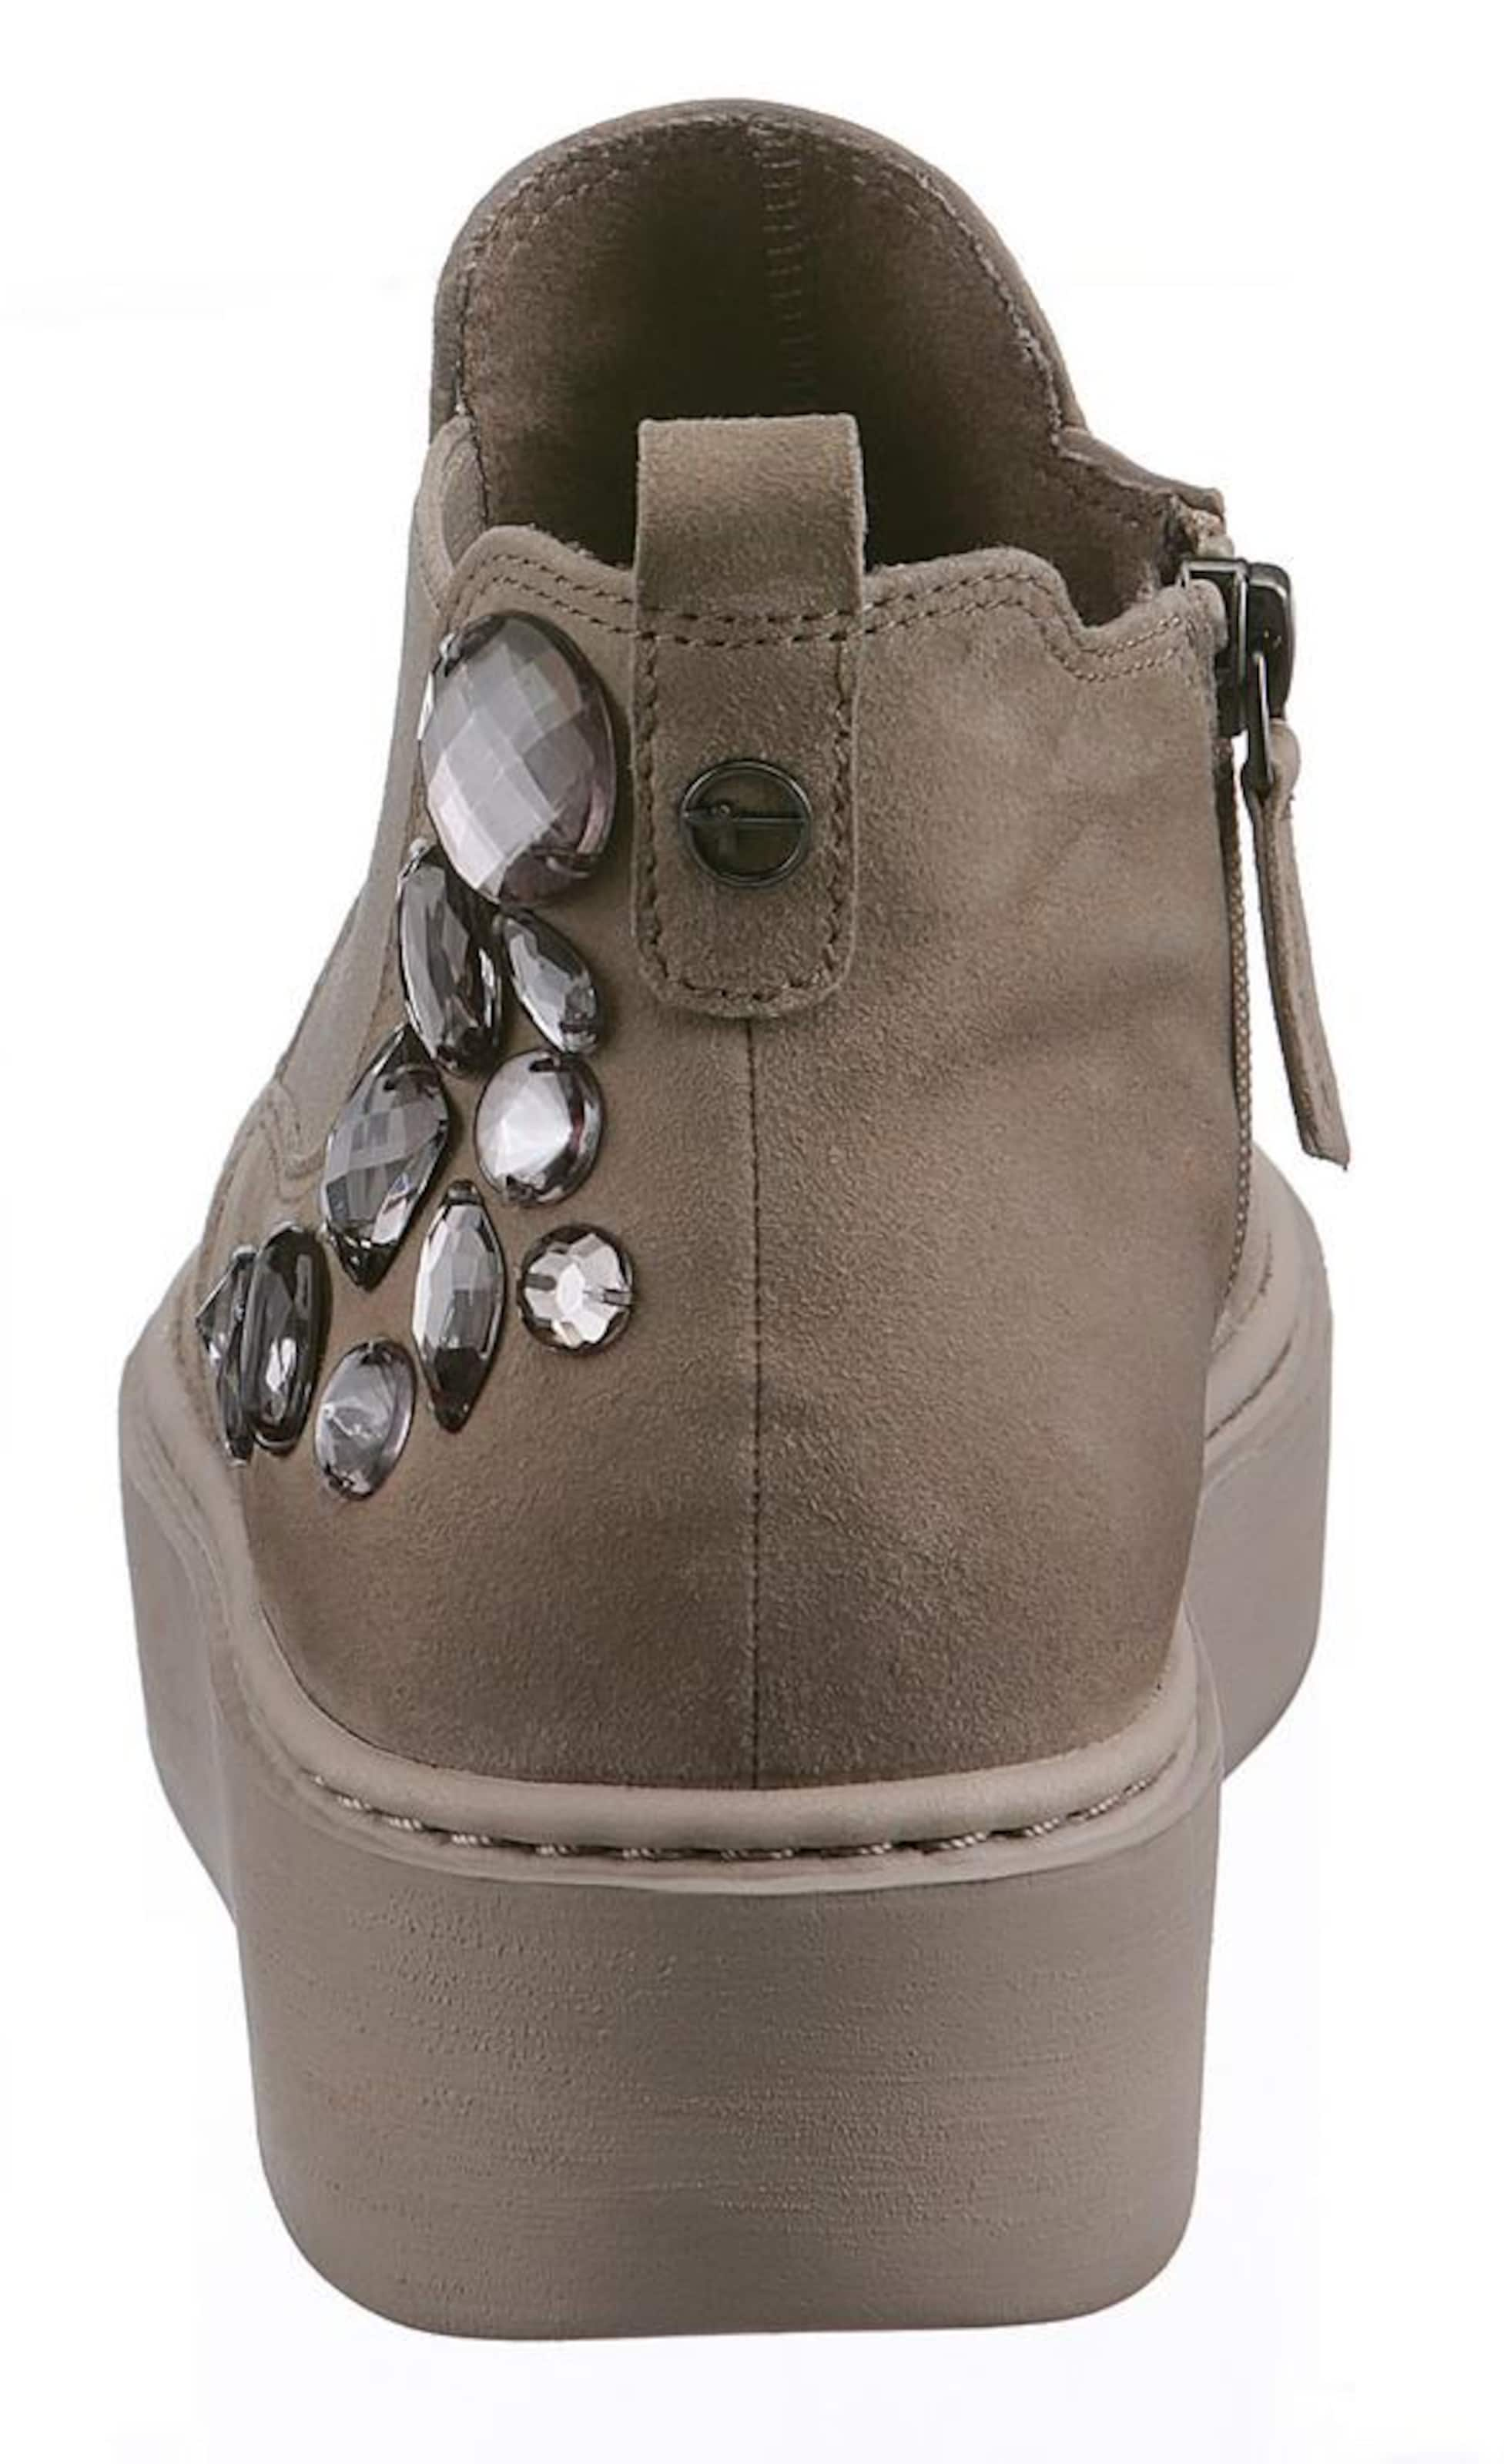 'freya' Taupe 'freya' Tamaris Chelseaboots In In Chelseaboots Tamaris A3j54qRL